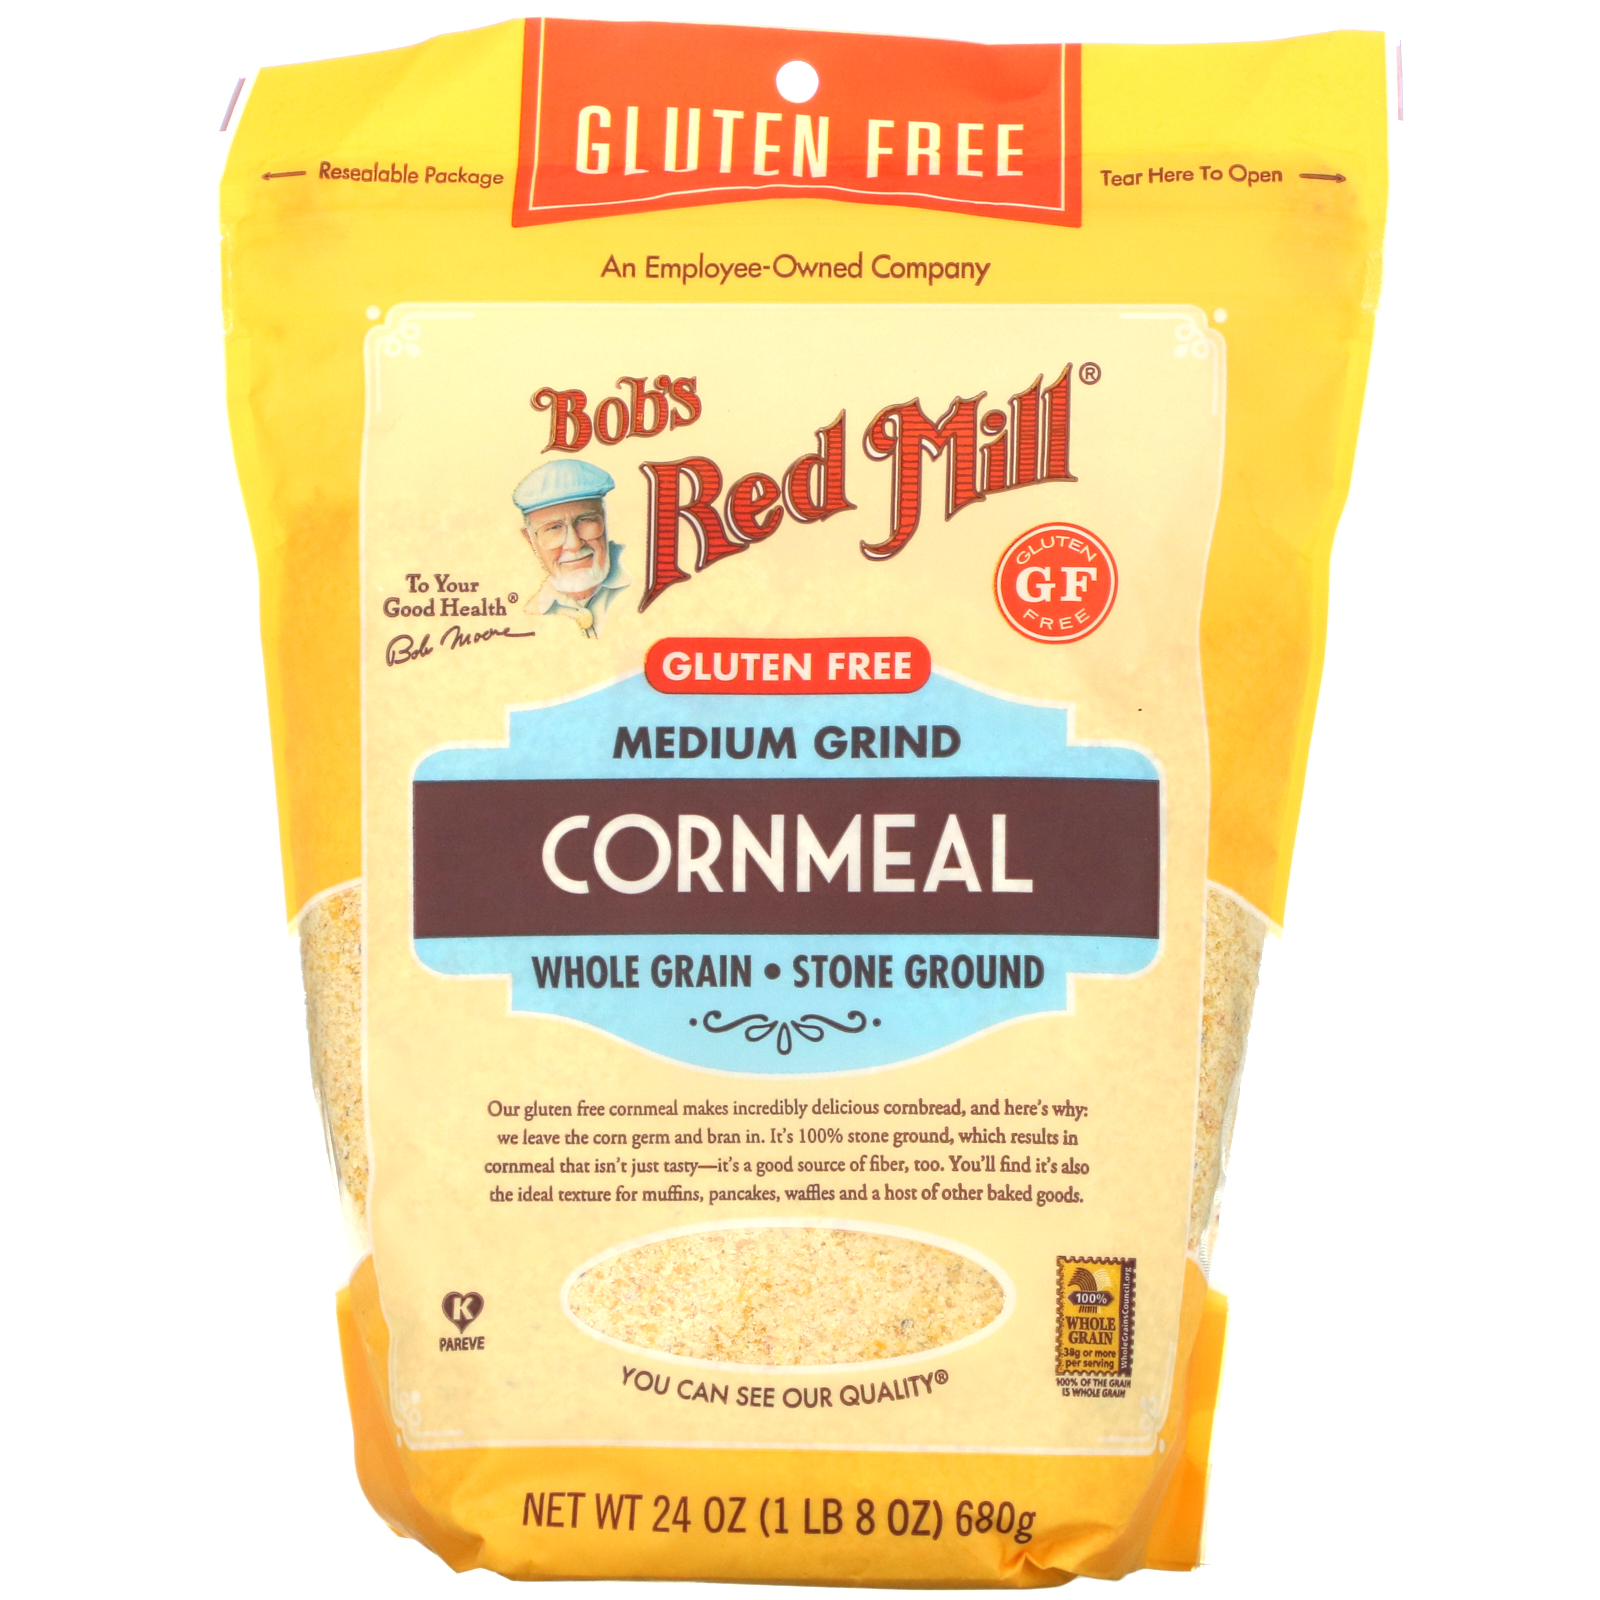 Bob's Red Mill, Medium Grind, Cornmeal, 24 oz (680 g)